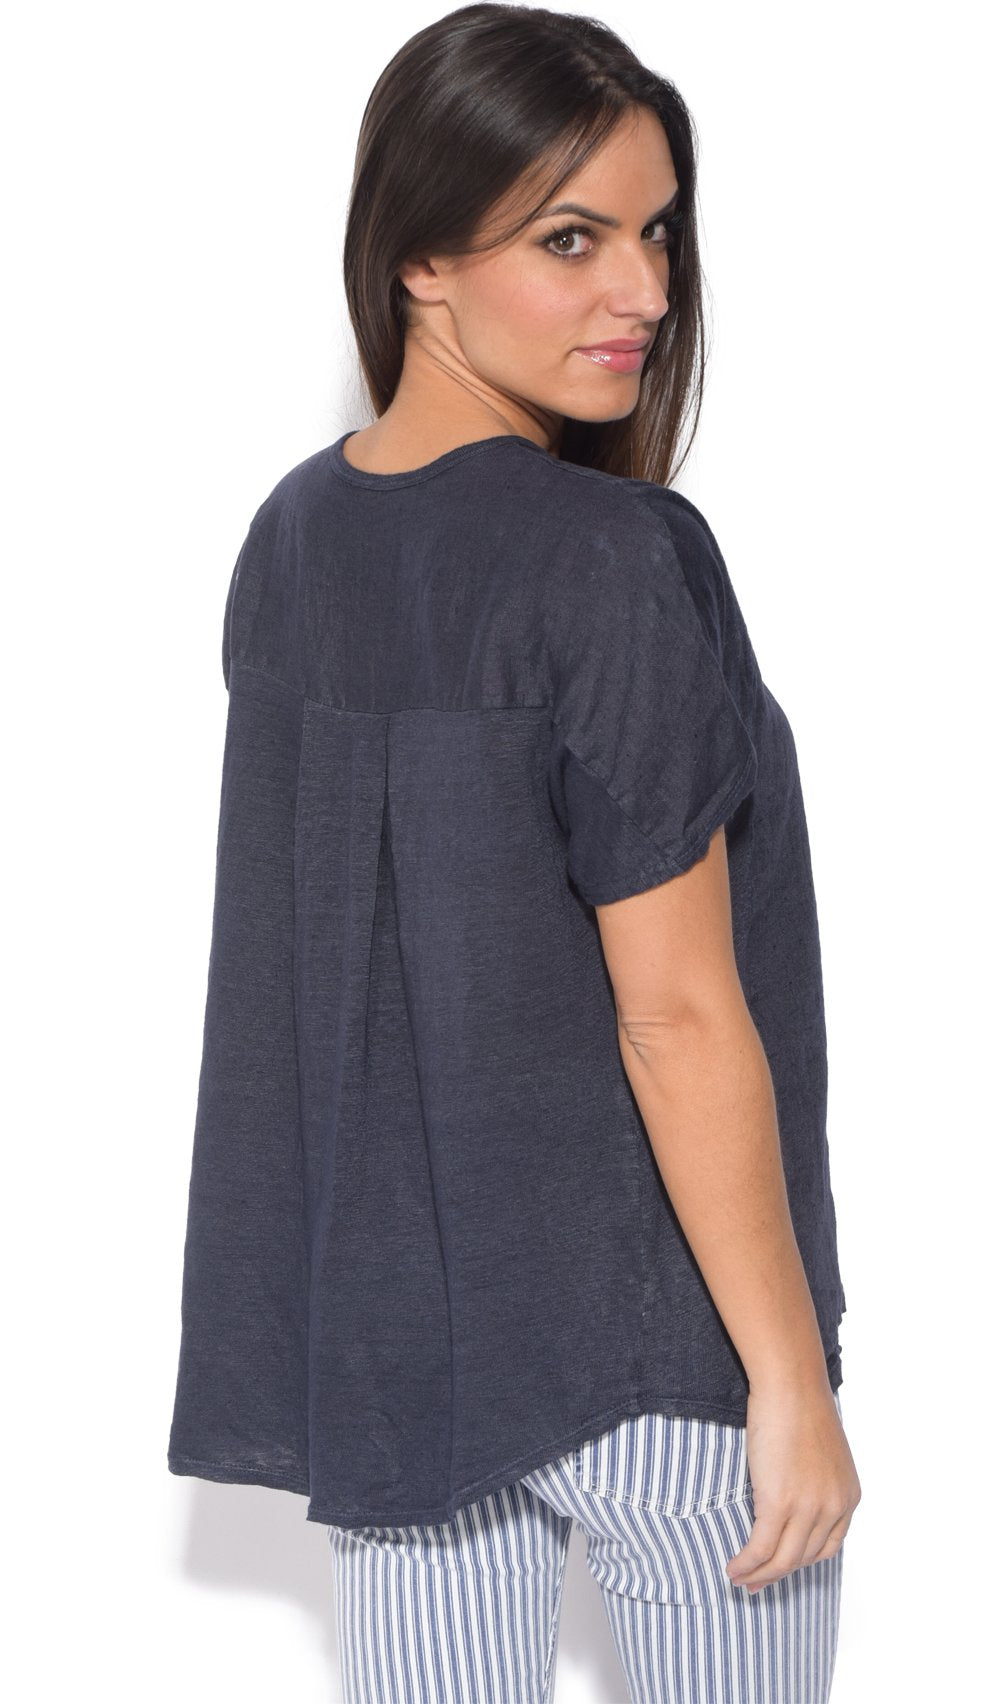 BI-MATERIAL V-NECK TOP WITH BACK PLEATS AND SHORT SLEEVES